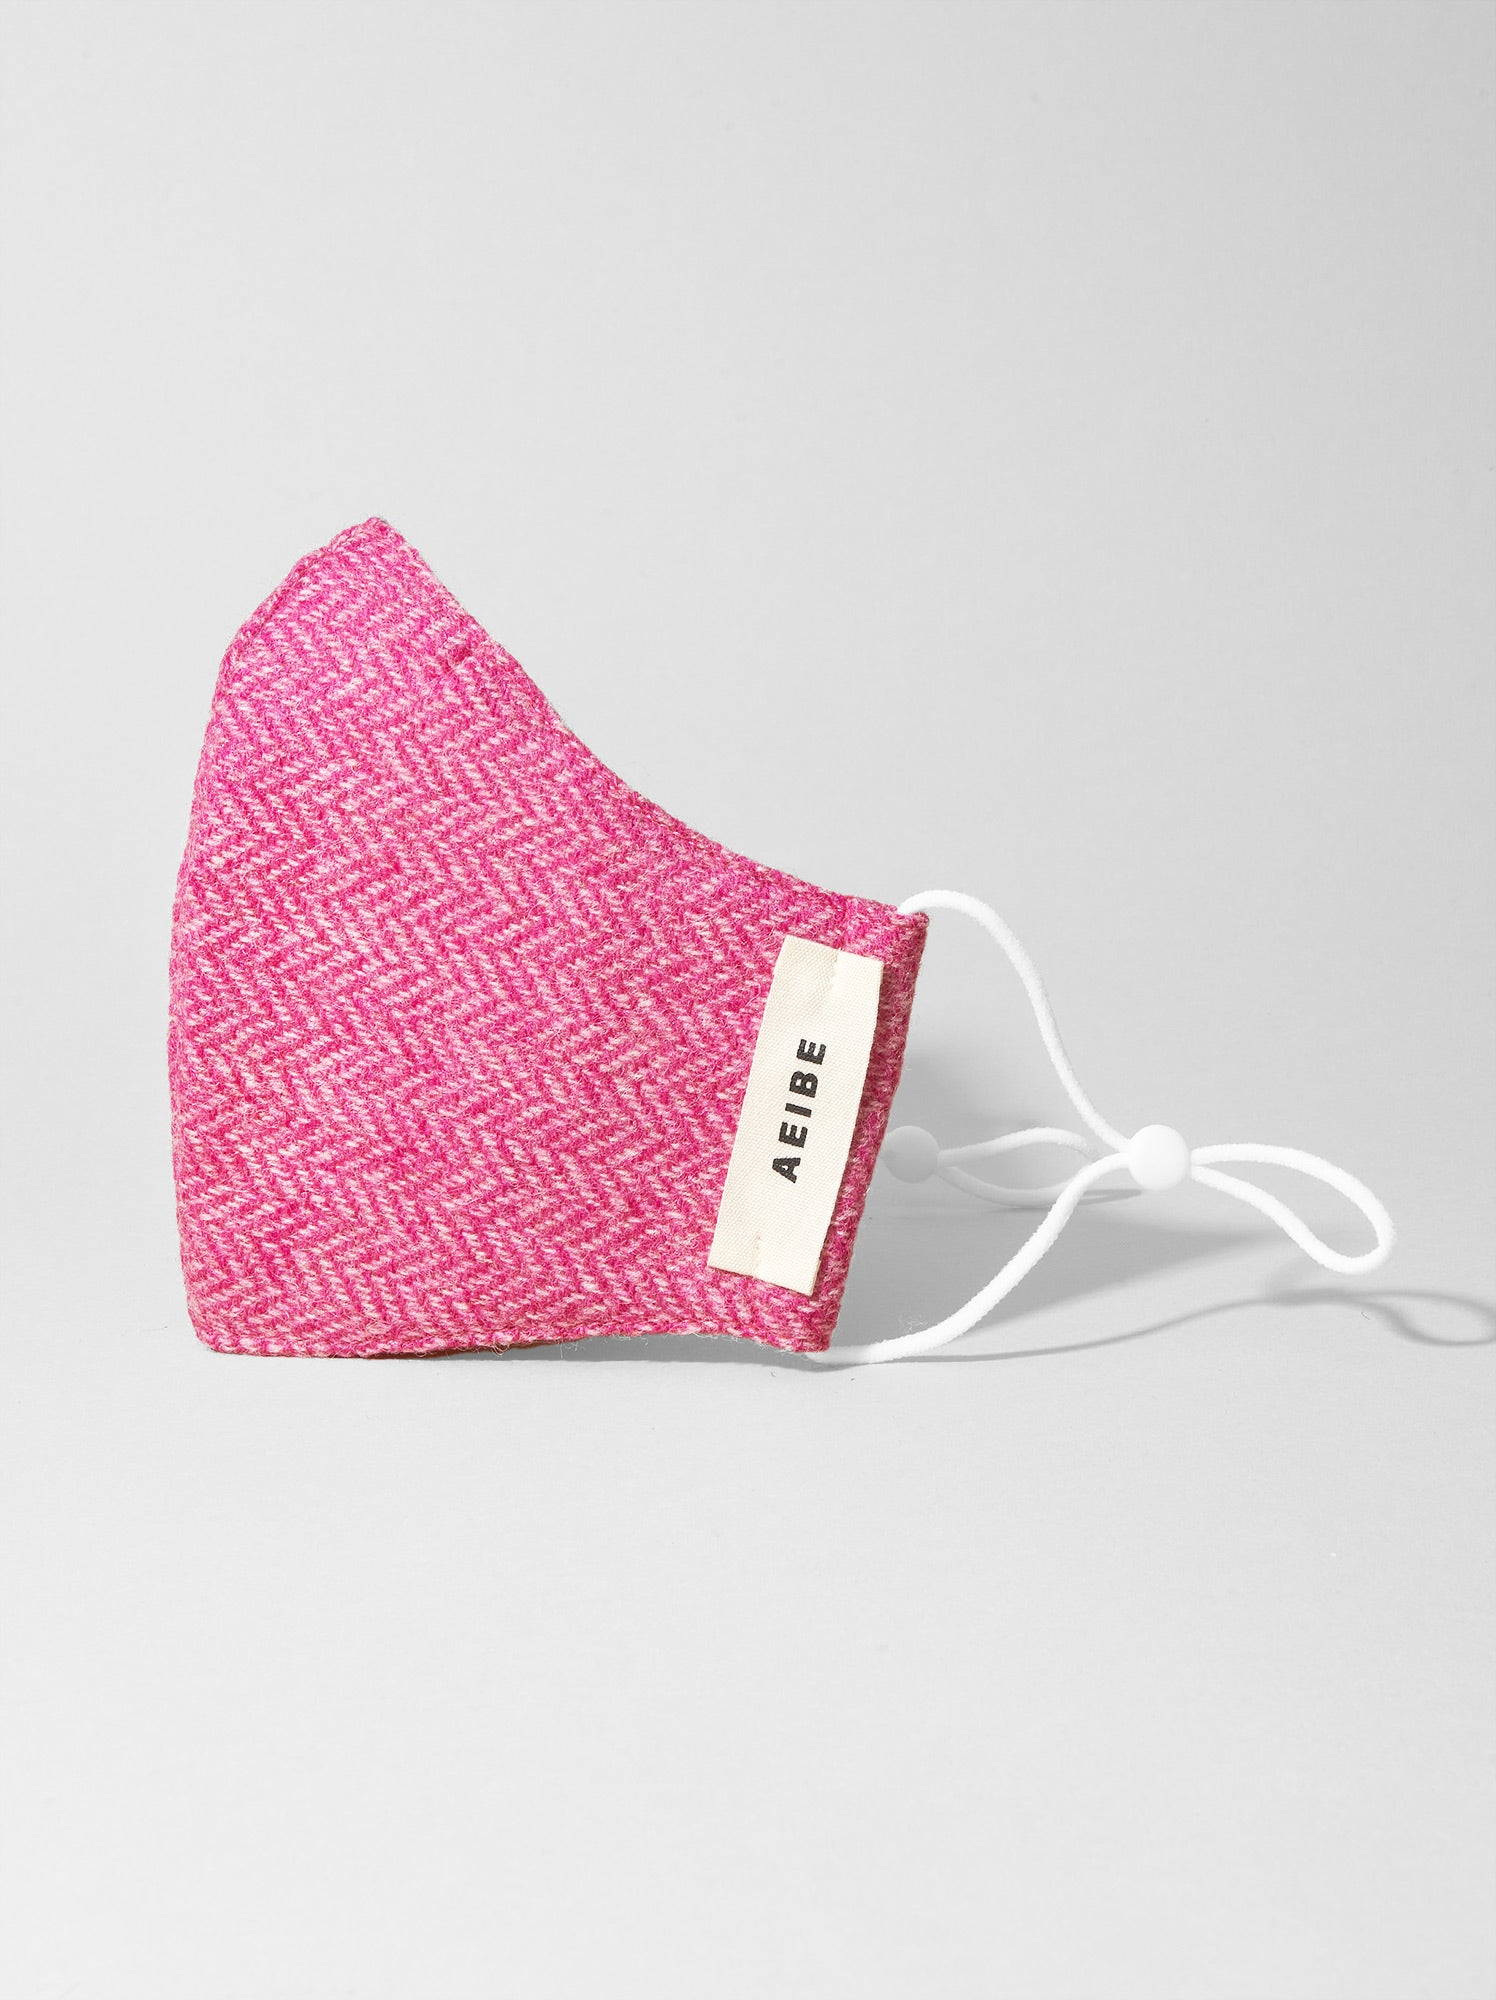 3Ply Filtered Wool face mask, Pink Herringbone - AEIBE